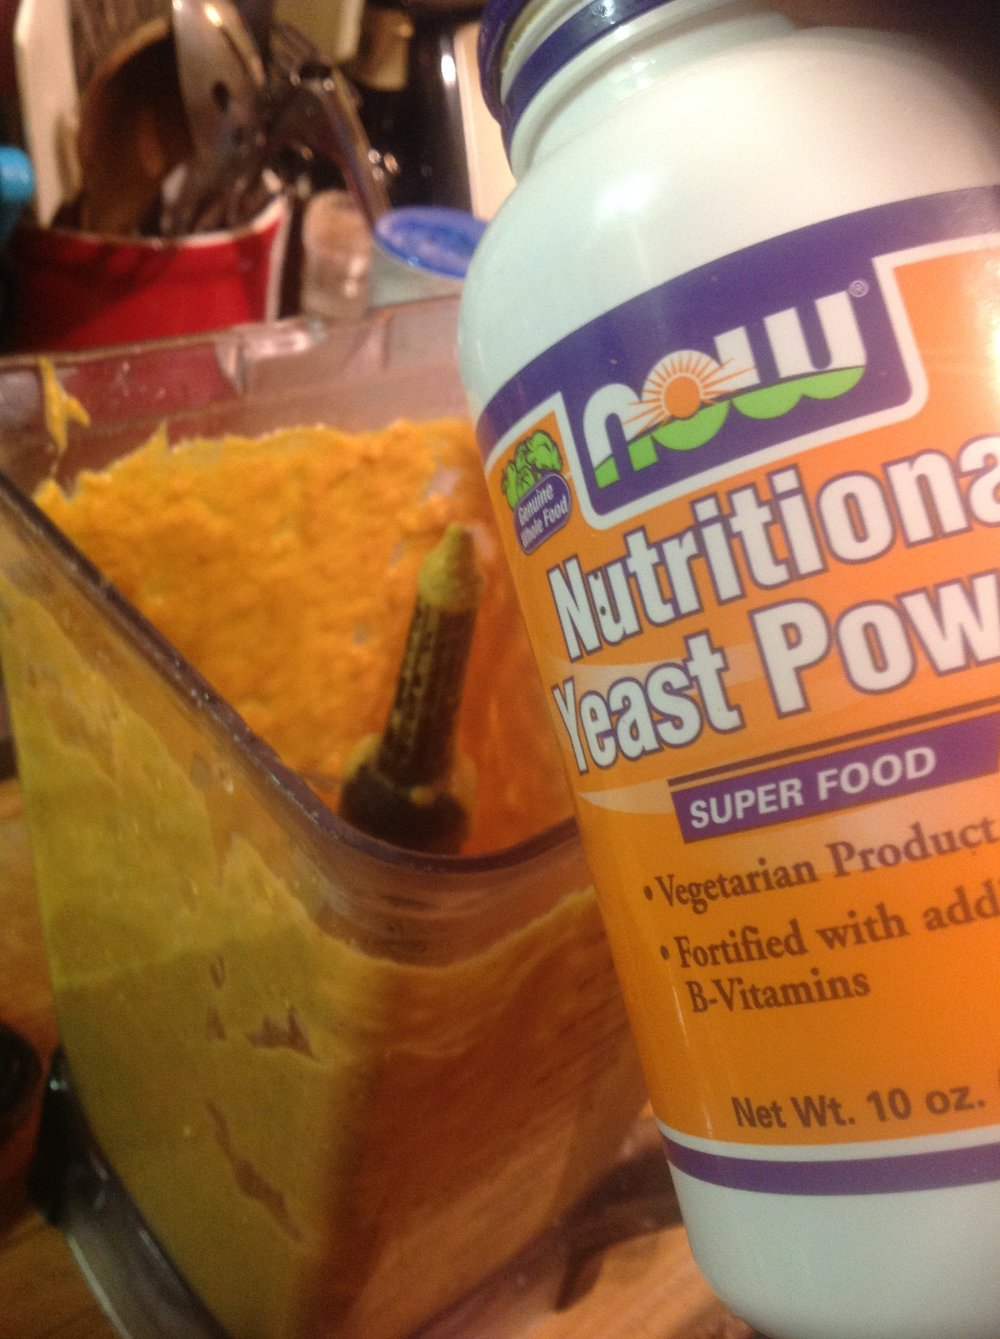 Chef's Plant-based Tip: Nutritional Yeast adds rich, creamy, umami flavor and golden color for a vegan, dairy-free sauce